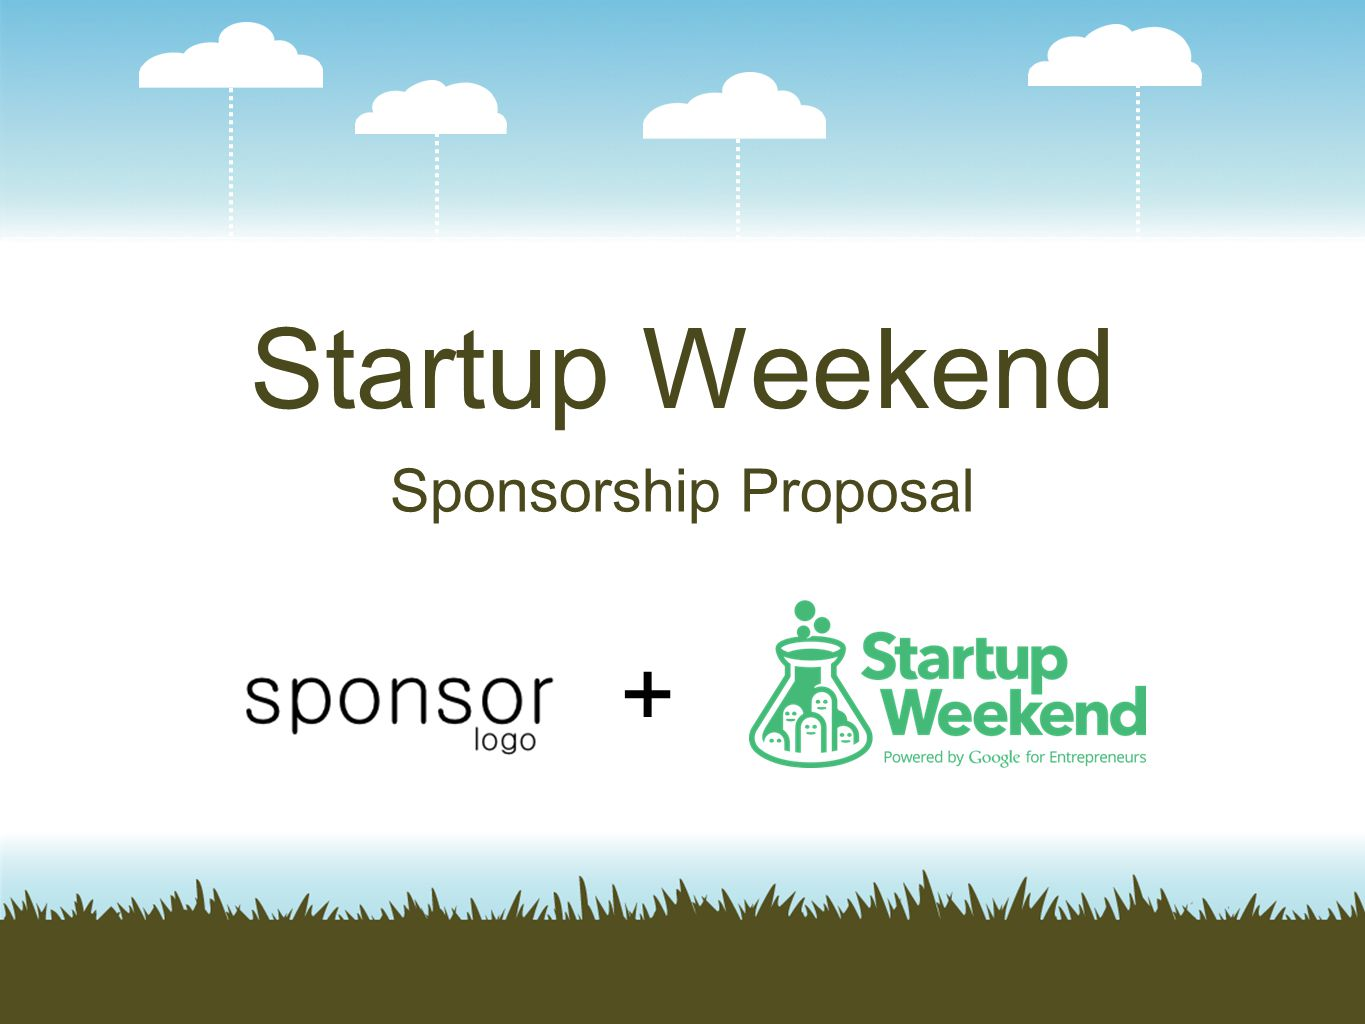 startup weekend sponsorship proposal ppt video online download, Powerpoint templates